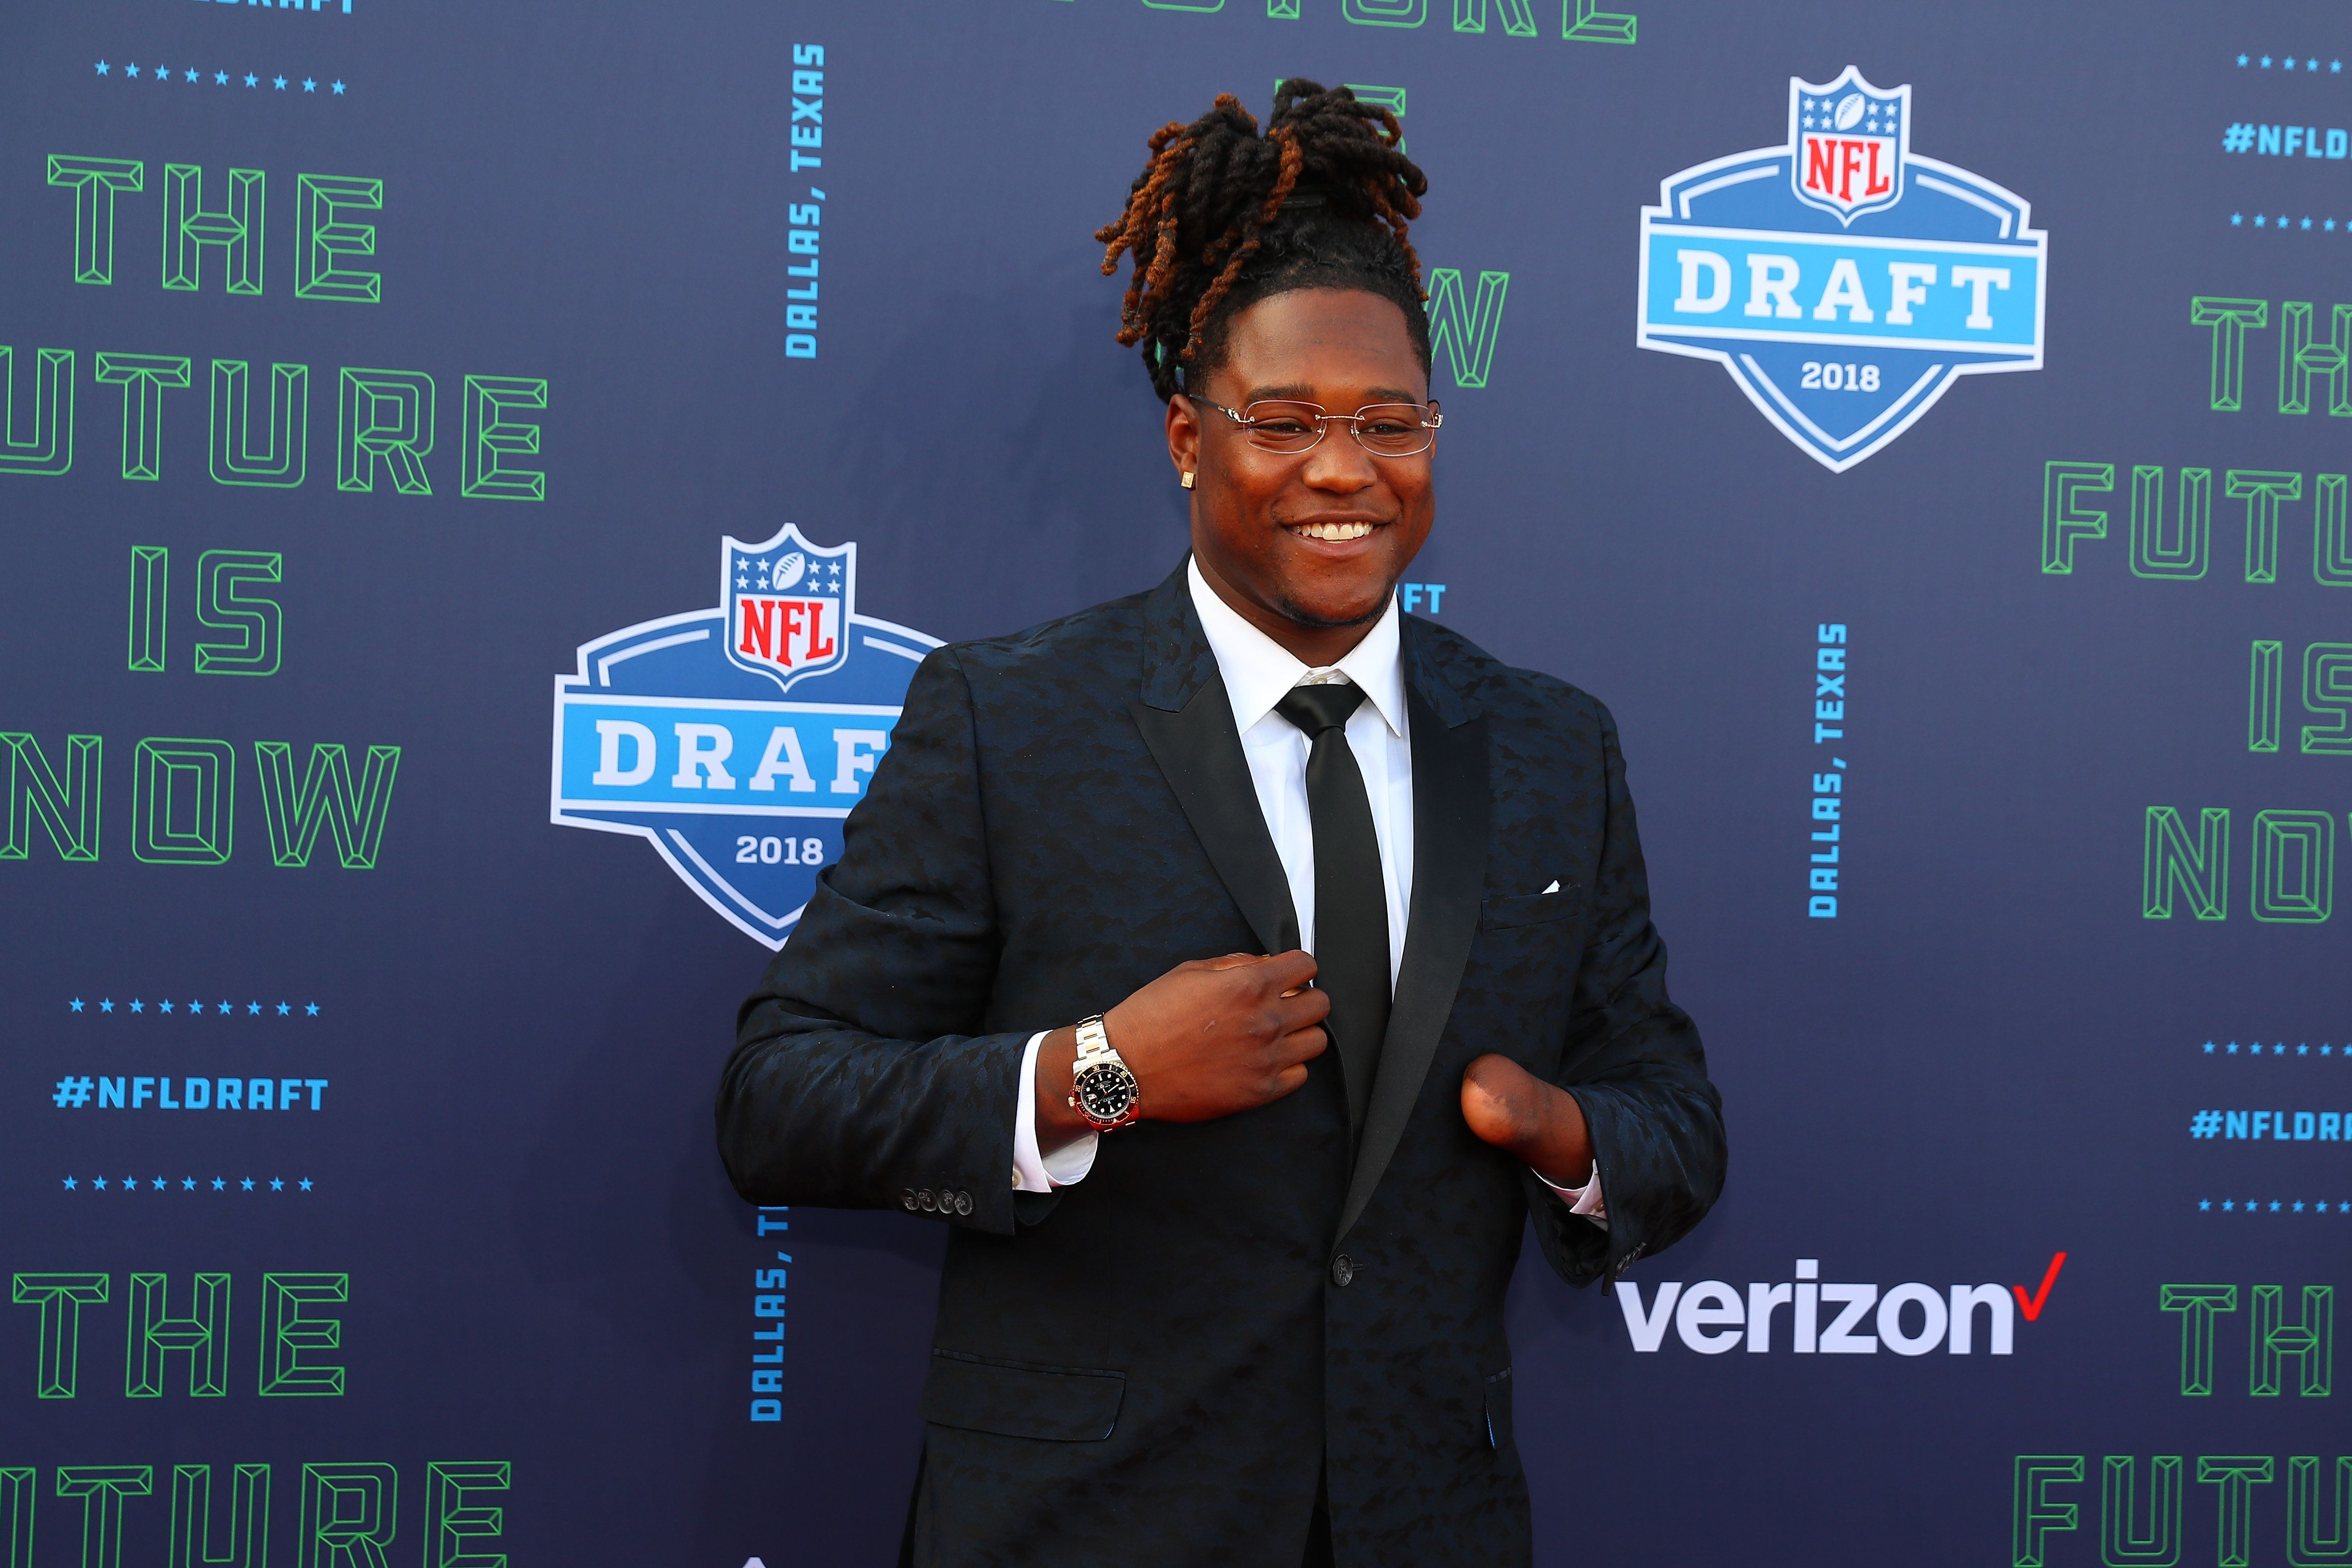 ARLINGTON, TX - APRIL 26:  Shaquem Griffin  on the Red Carpet prior to the 2018 NFL Draft at AT&T Statium on April 26, 2018 at AT&T Stadium in Arlington Texas.  (Photo by Rich Graessle/Icon Sportswire via Getty Images)